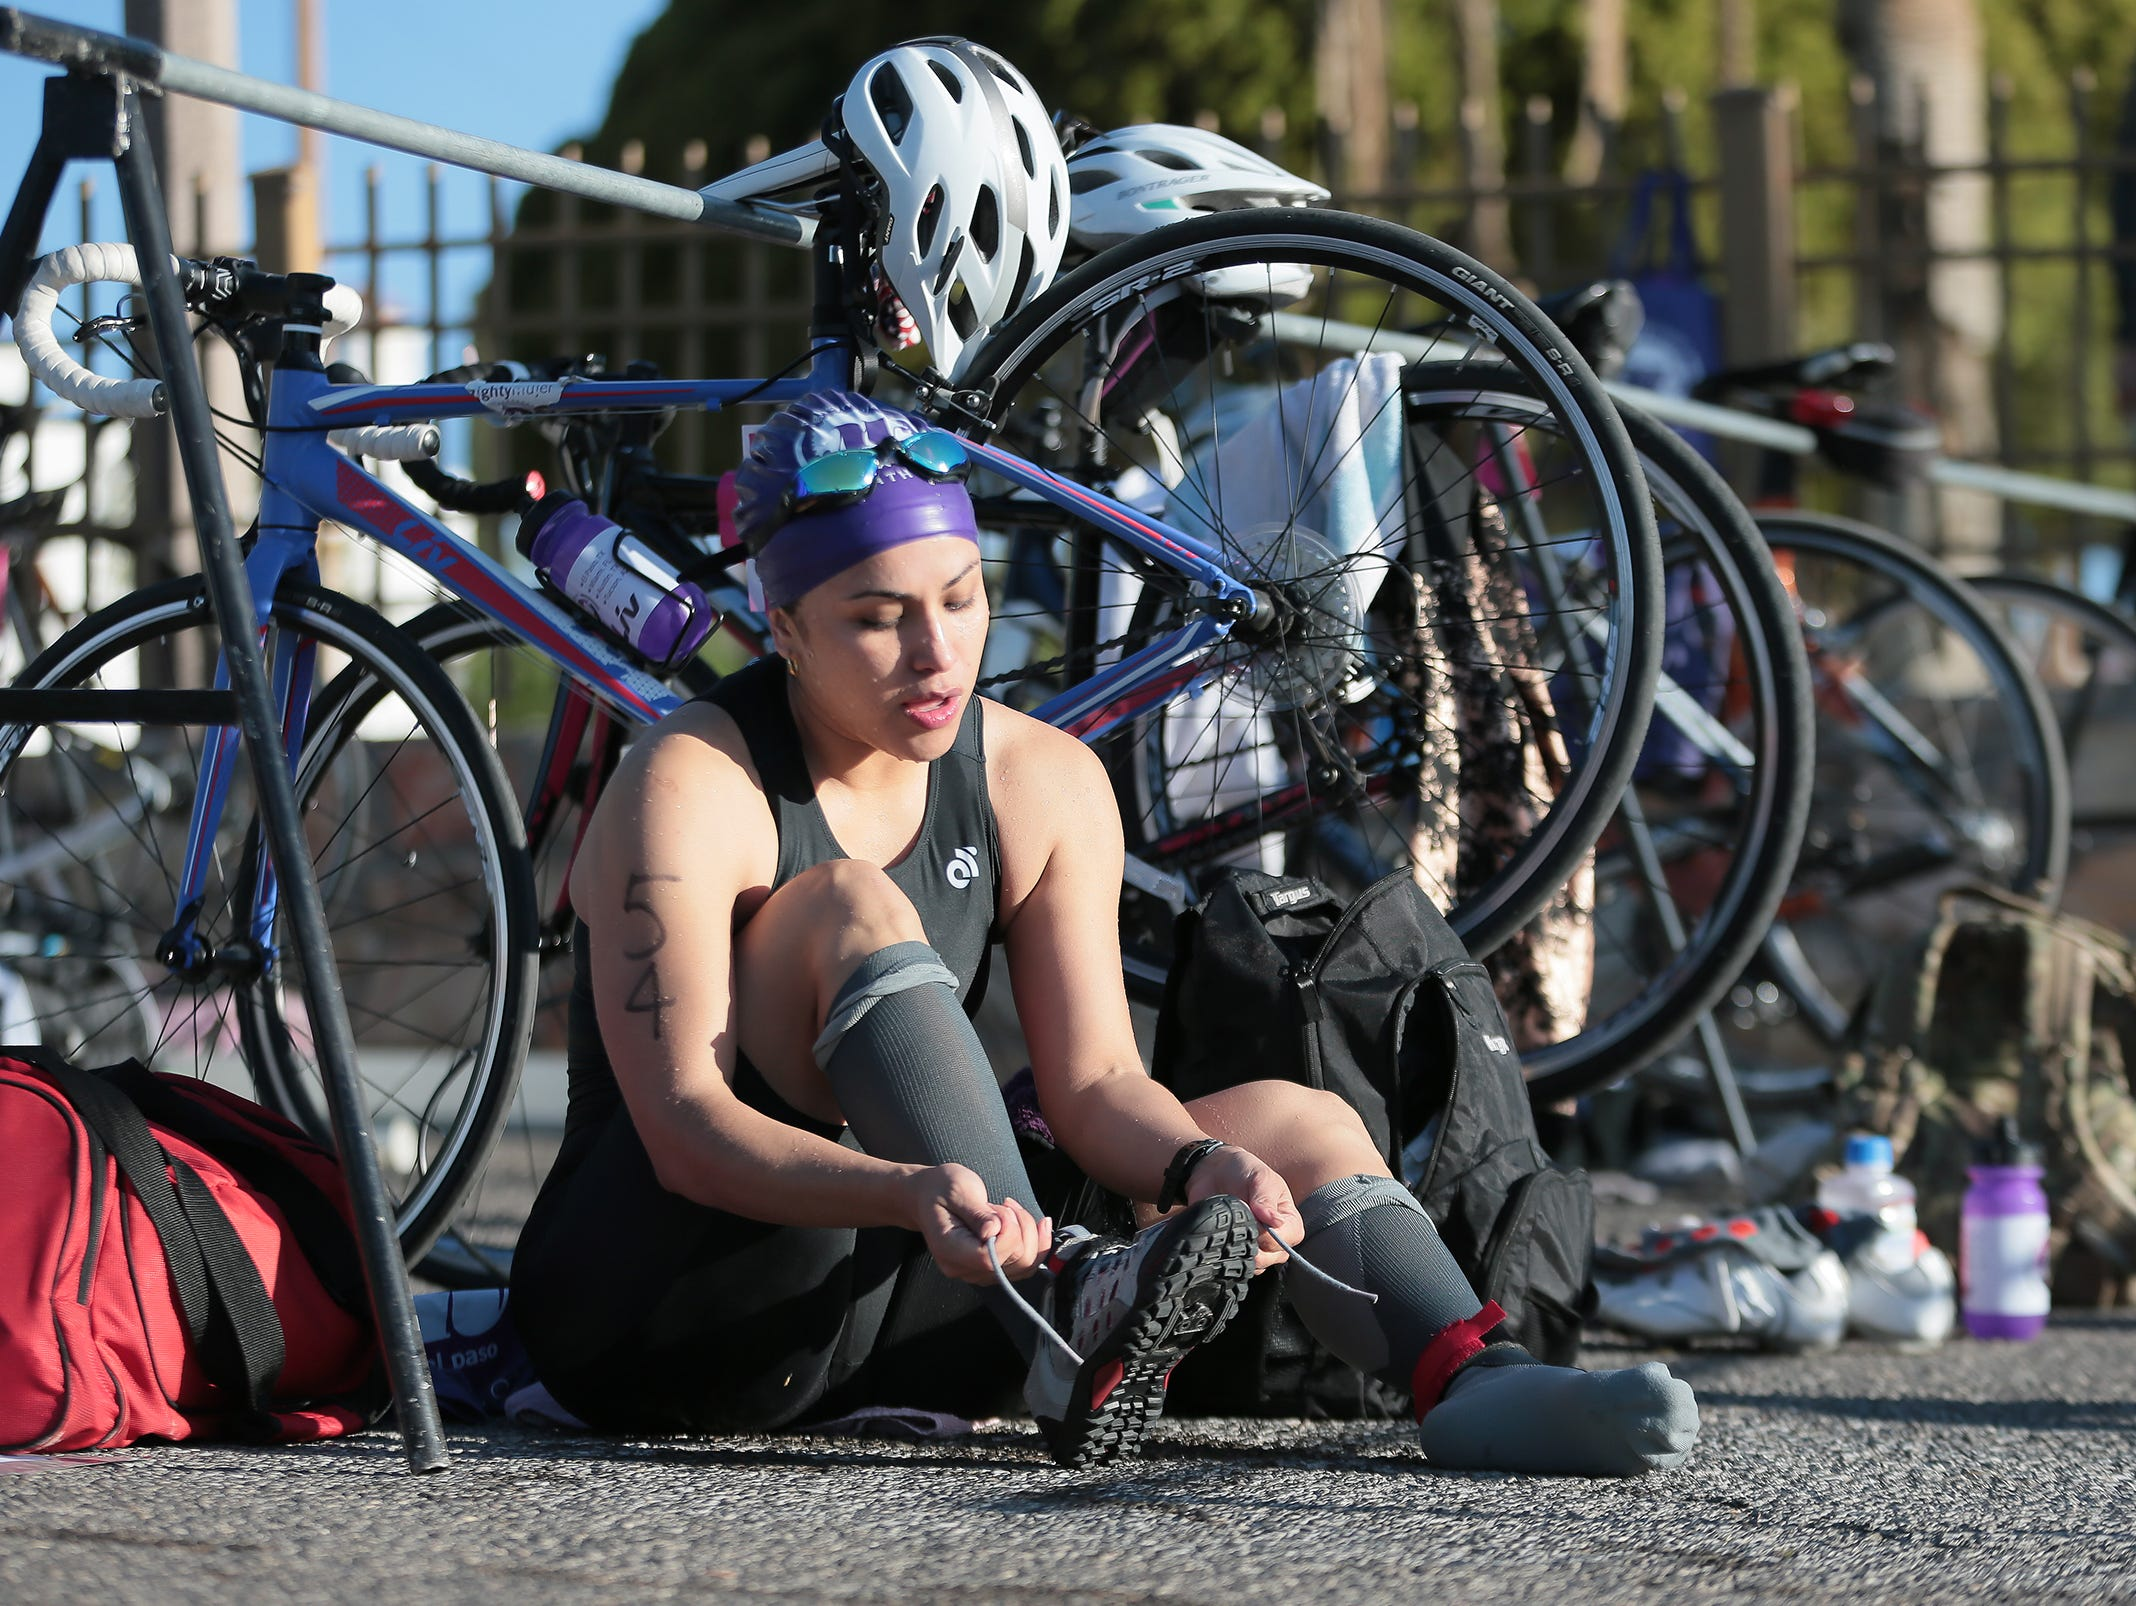 Over 400 athletes competed in the 2019 Mighty Mujer Triathlon Saturday morning at Memorial Park Pool.